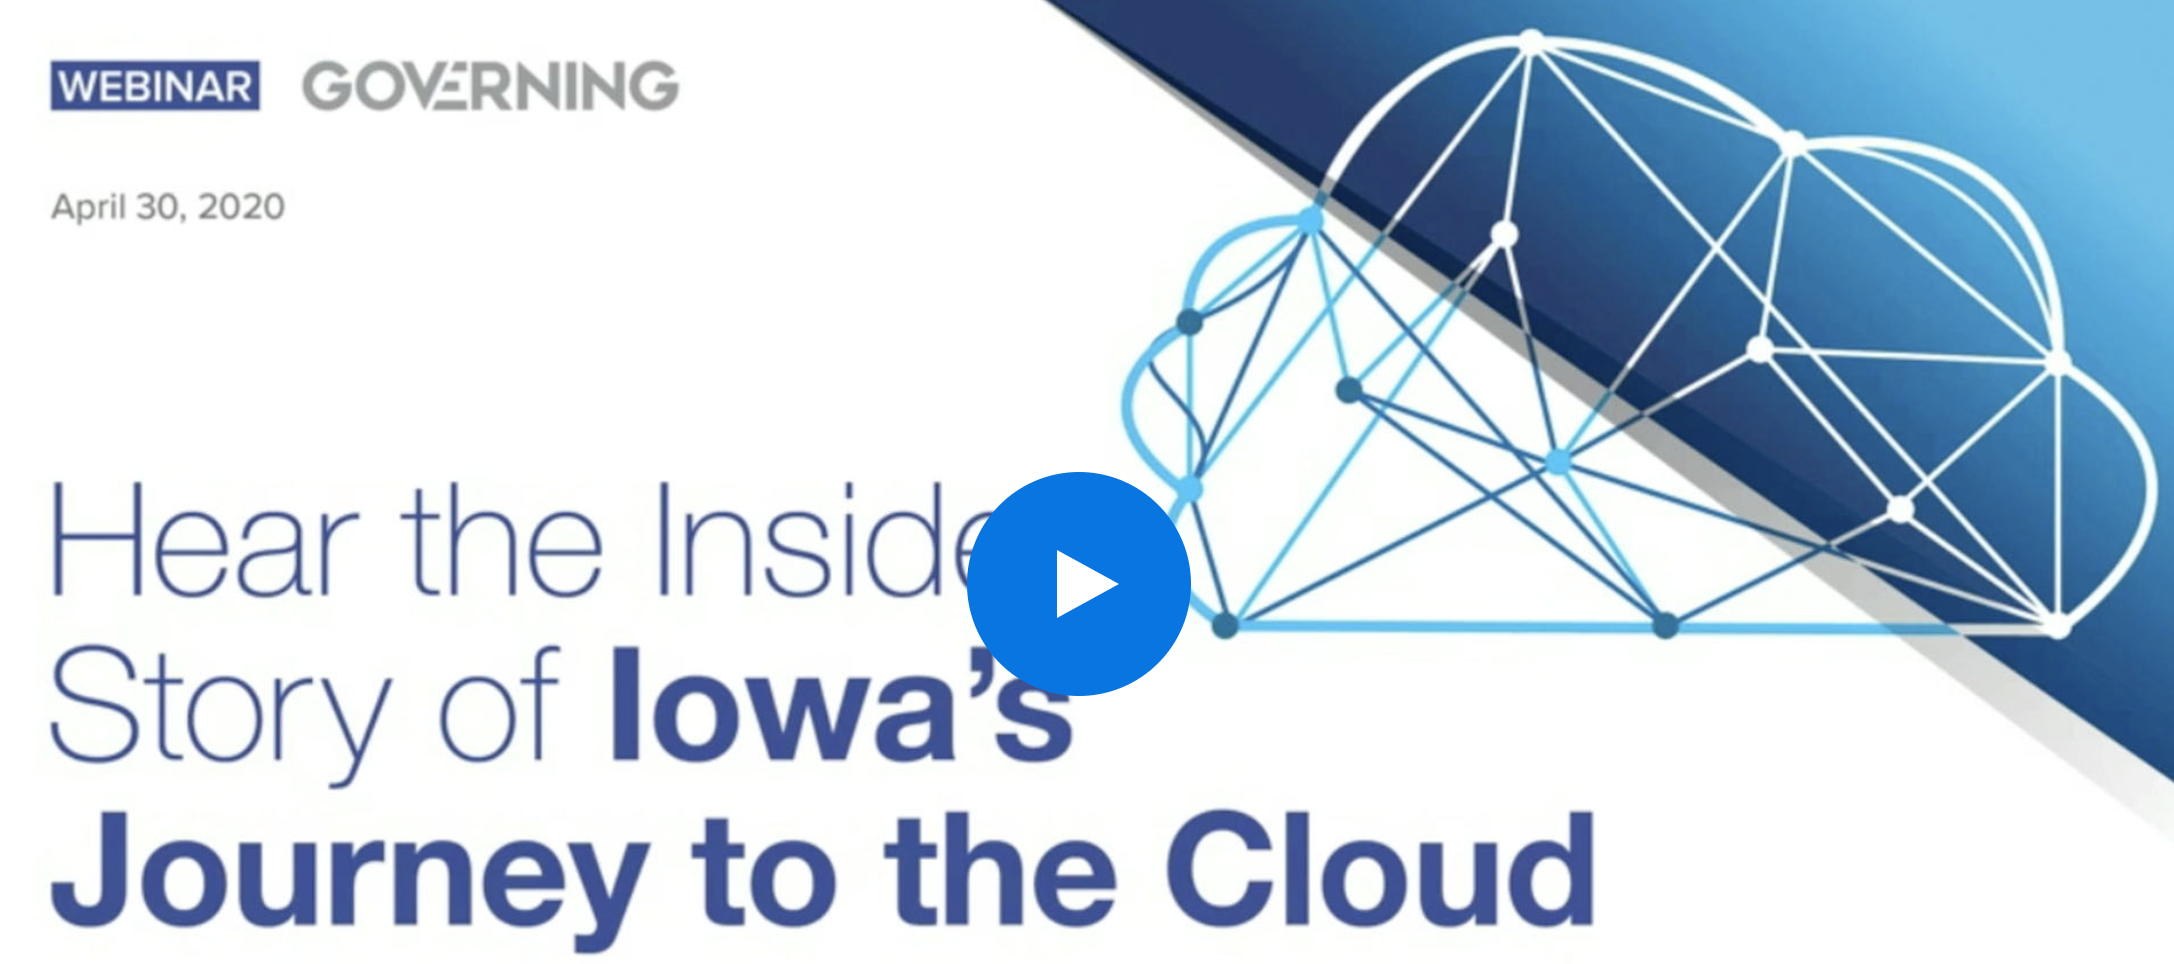 The State of Iowa's Journey to the Cloud